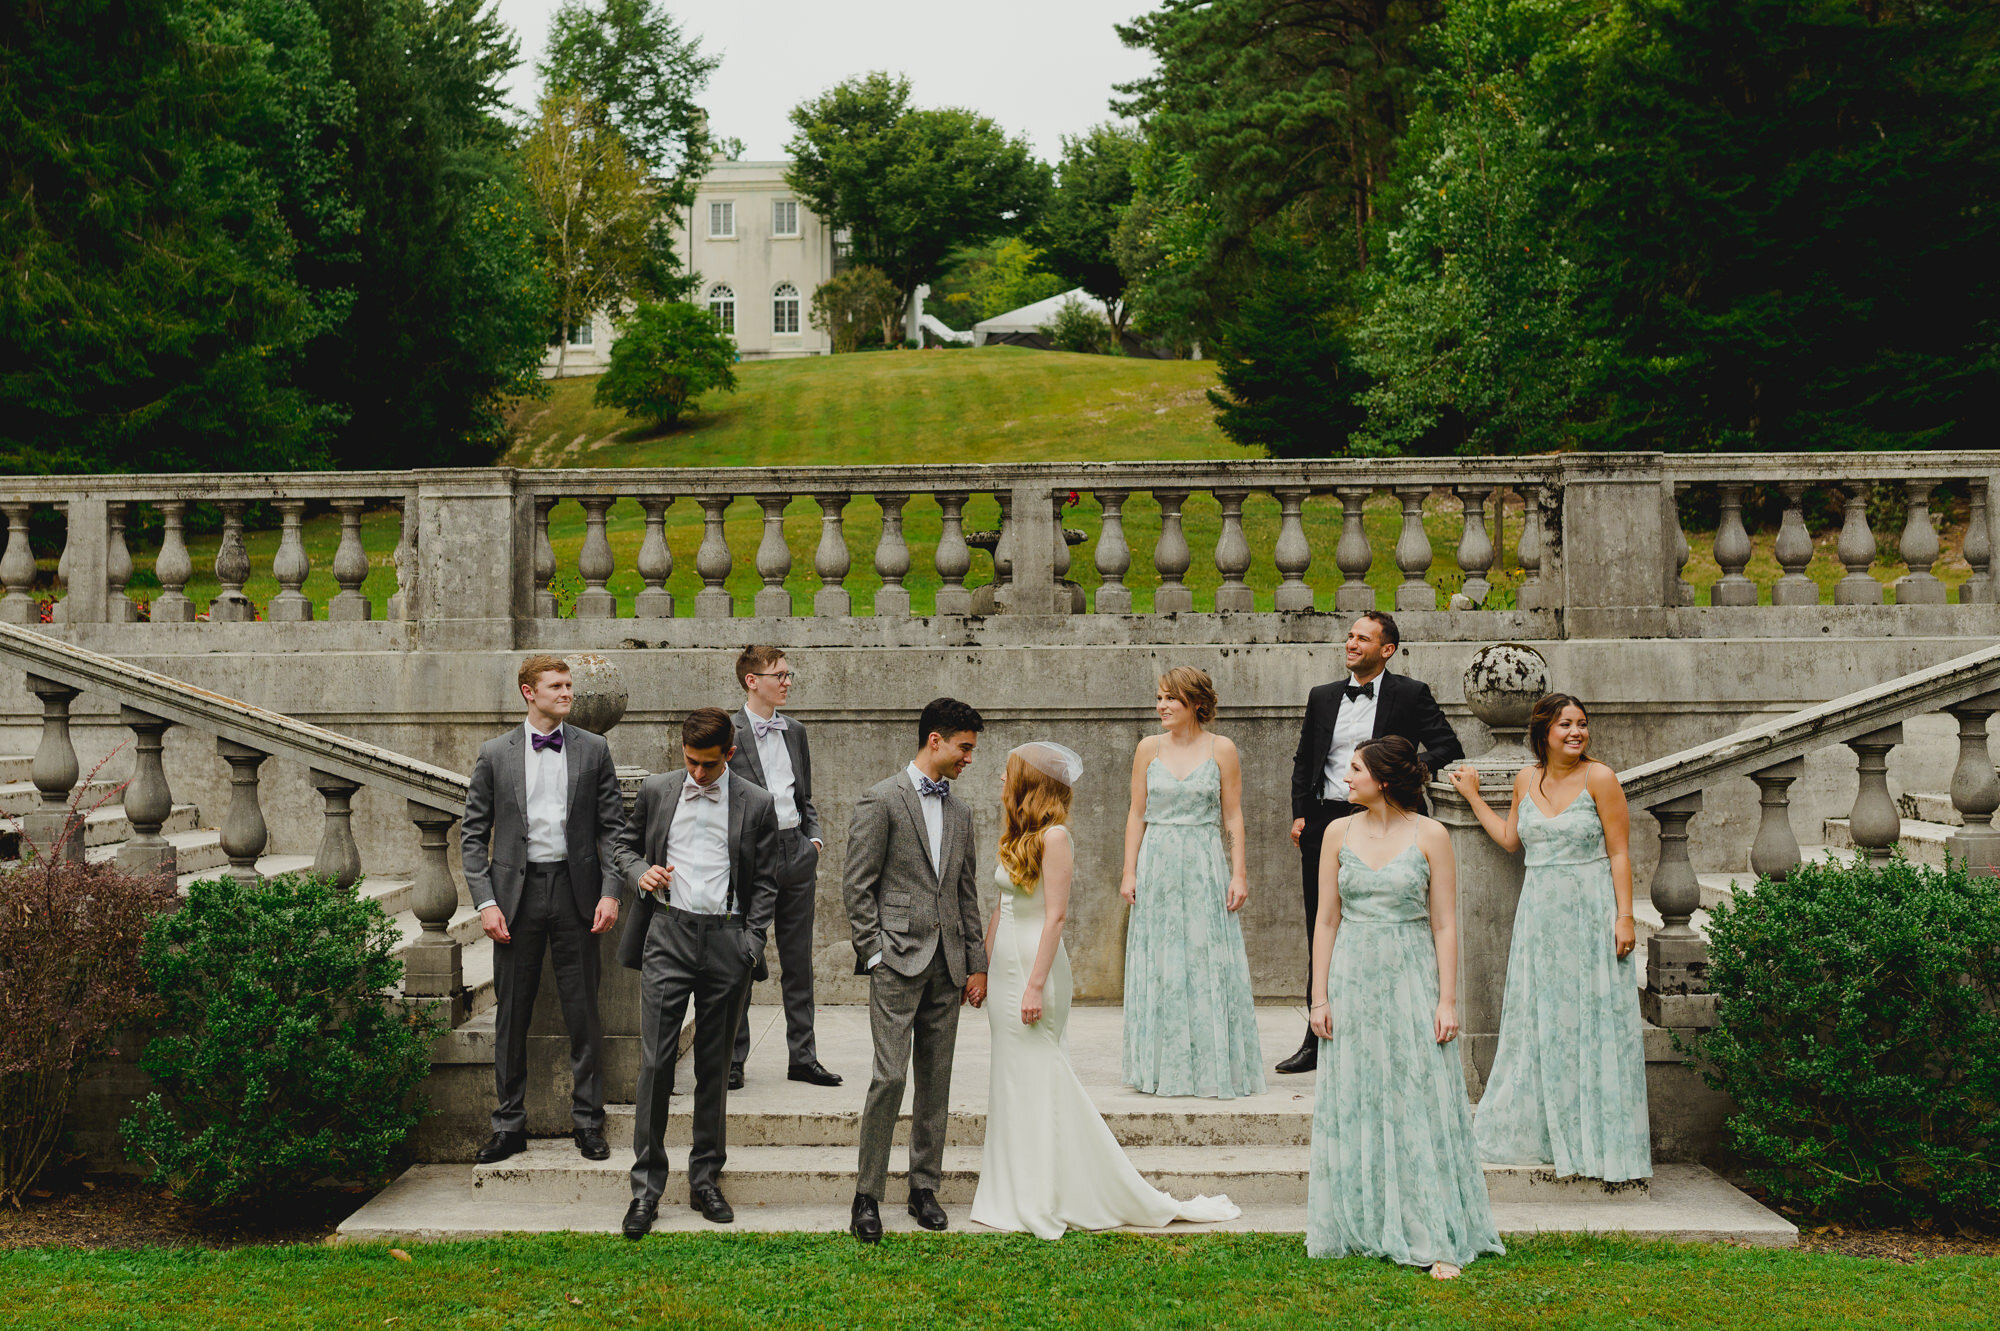 strong-mansion-wedding-bridal-party-by-Gabriele-Stonyte-Photography